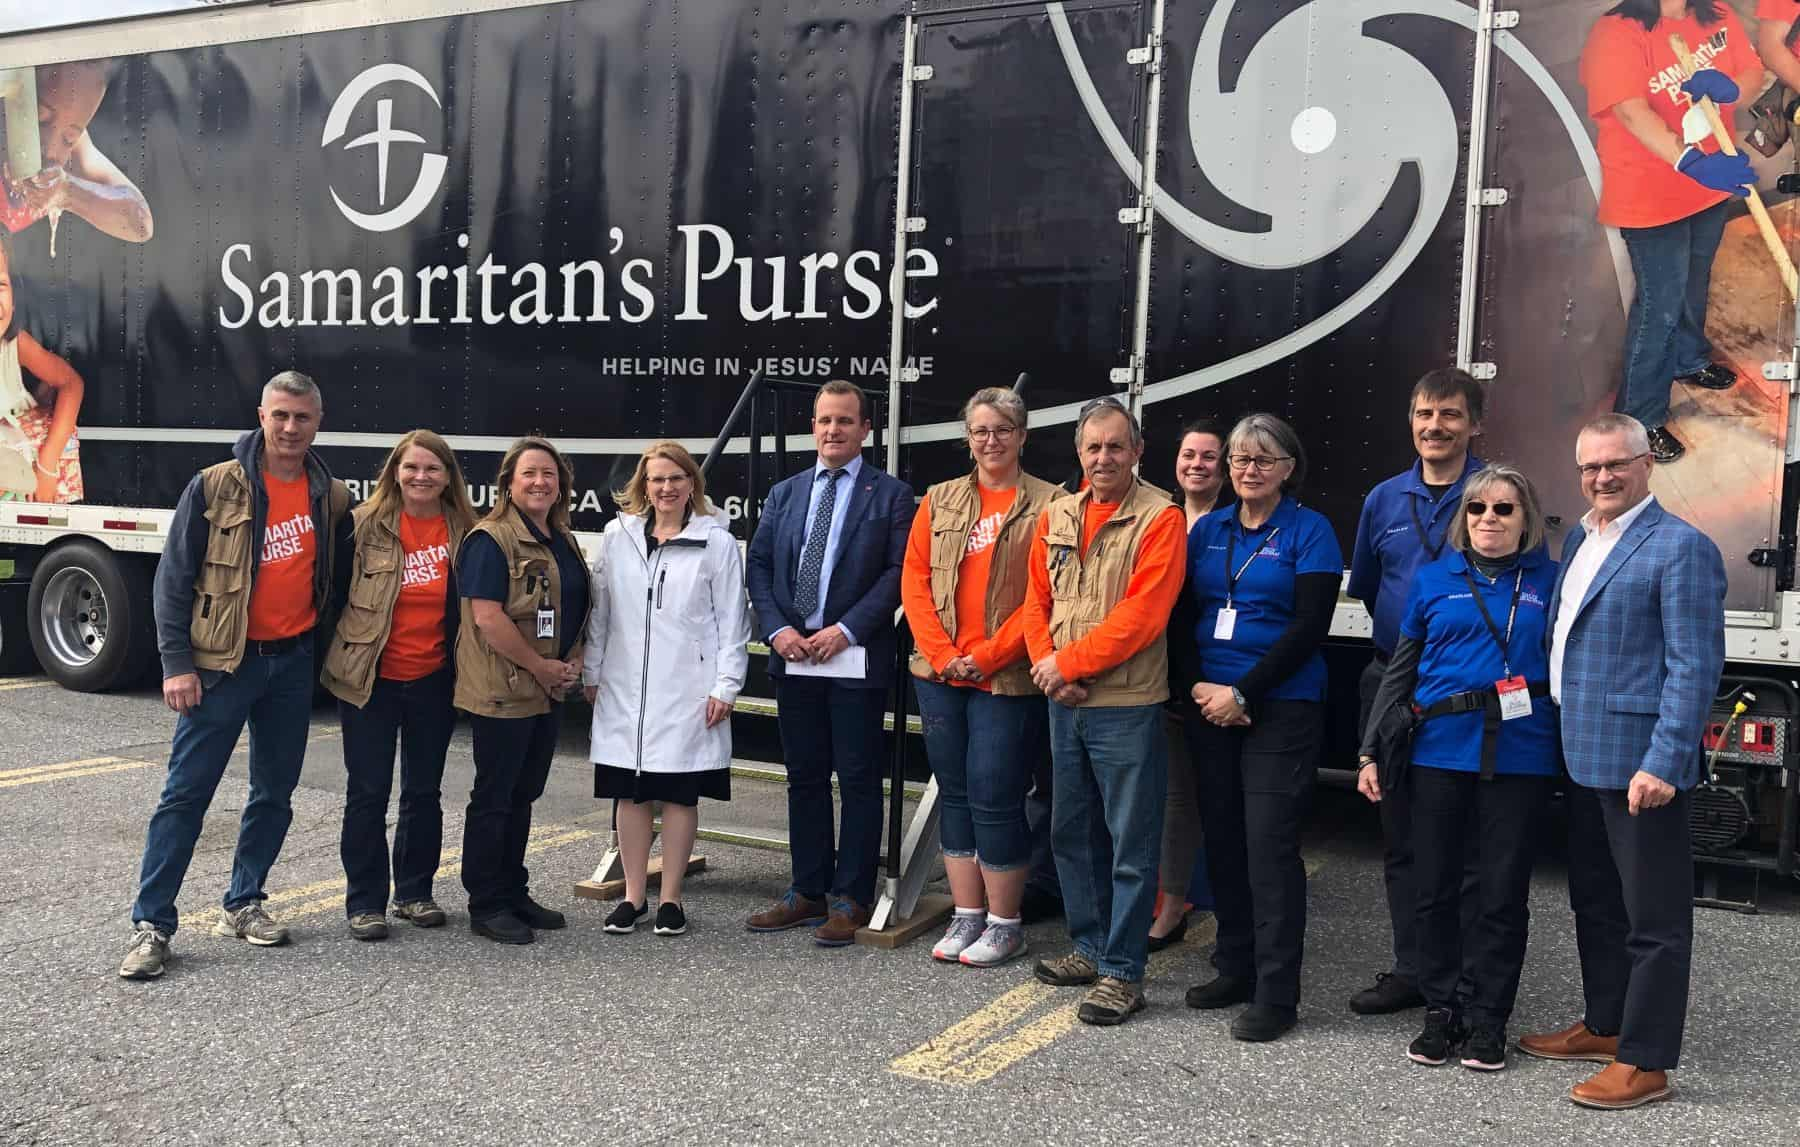 Ontario Solicitor General Sylvia Jones (White jacket) visited the Samaritan's Purse Disaster Relief Unit tractor trailer in Ottawa today. She met with members of the Samaritan's Purse Canadian Disaster Relief team, and Billy Graham Rapid Response Team chaplains, who together are providing physical and spiritual help to flooded Ottawa residents.